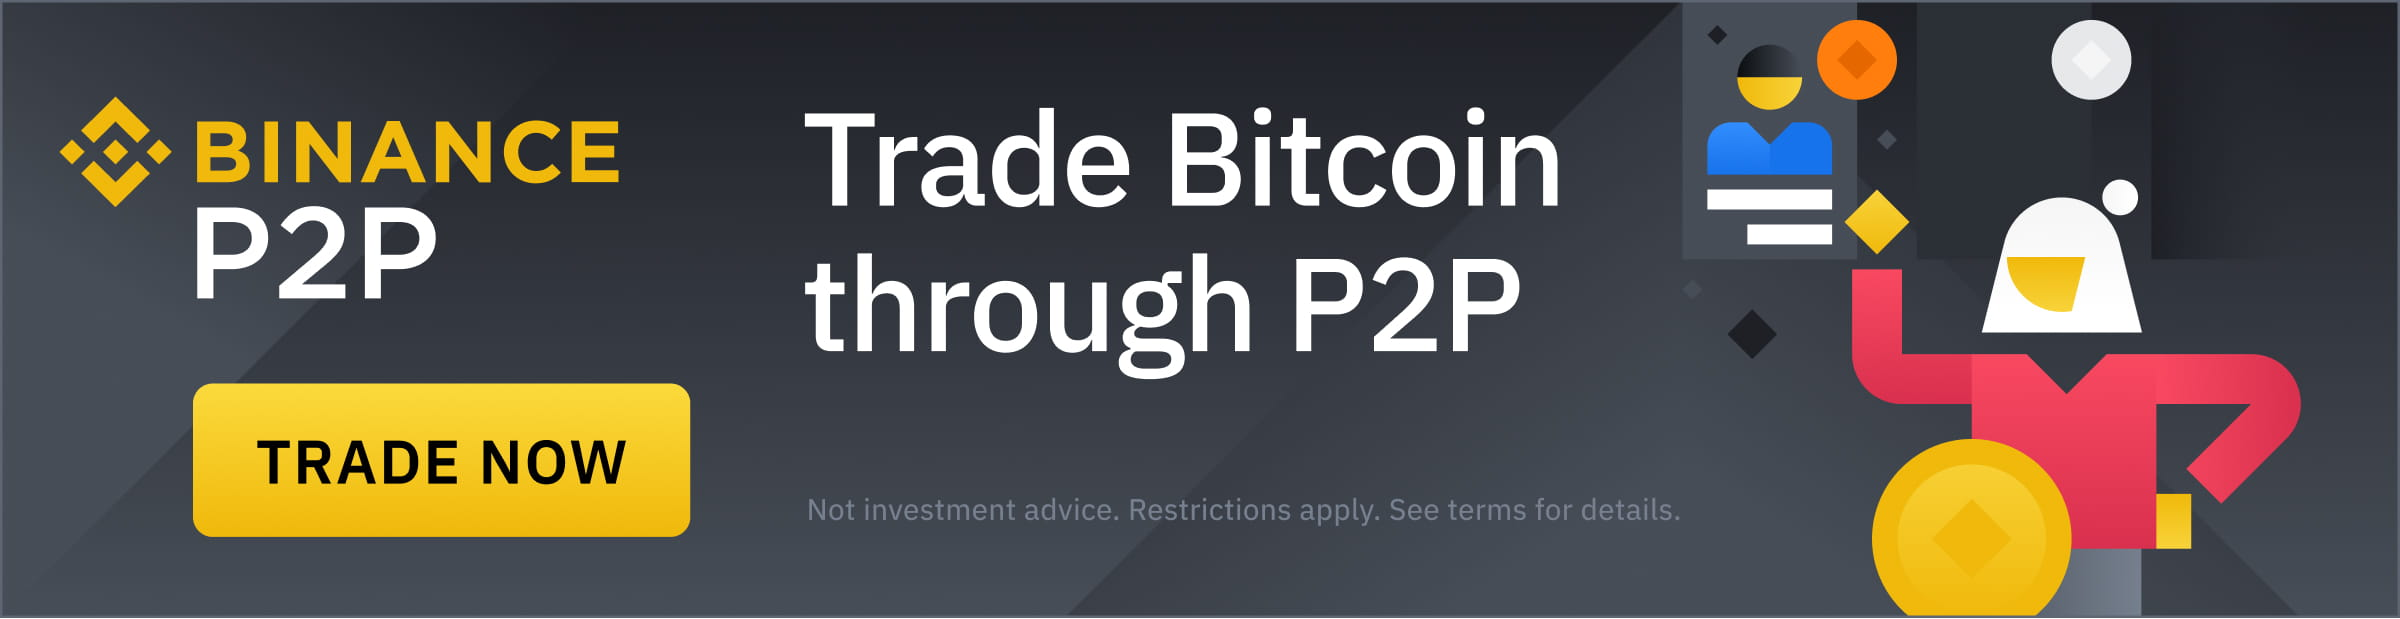 6 Bitcoin Scams To Avoid When Using P2PCryptocurrency Trading Signals, Strategies & Templates | DexStrats